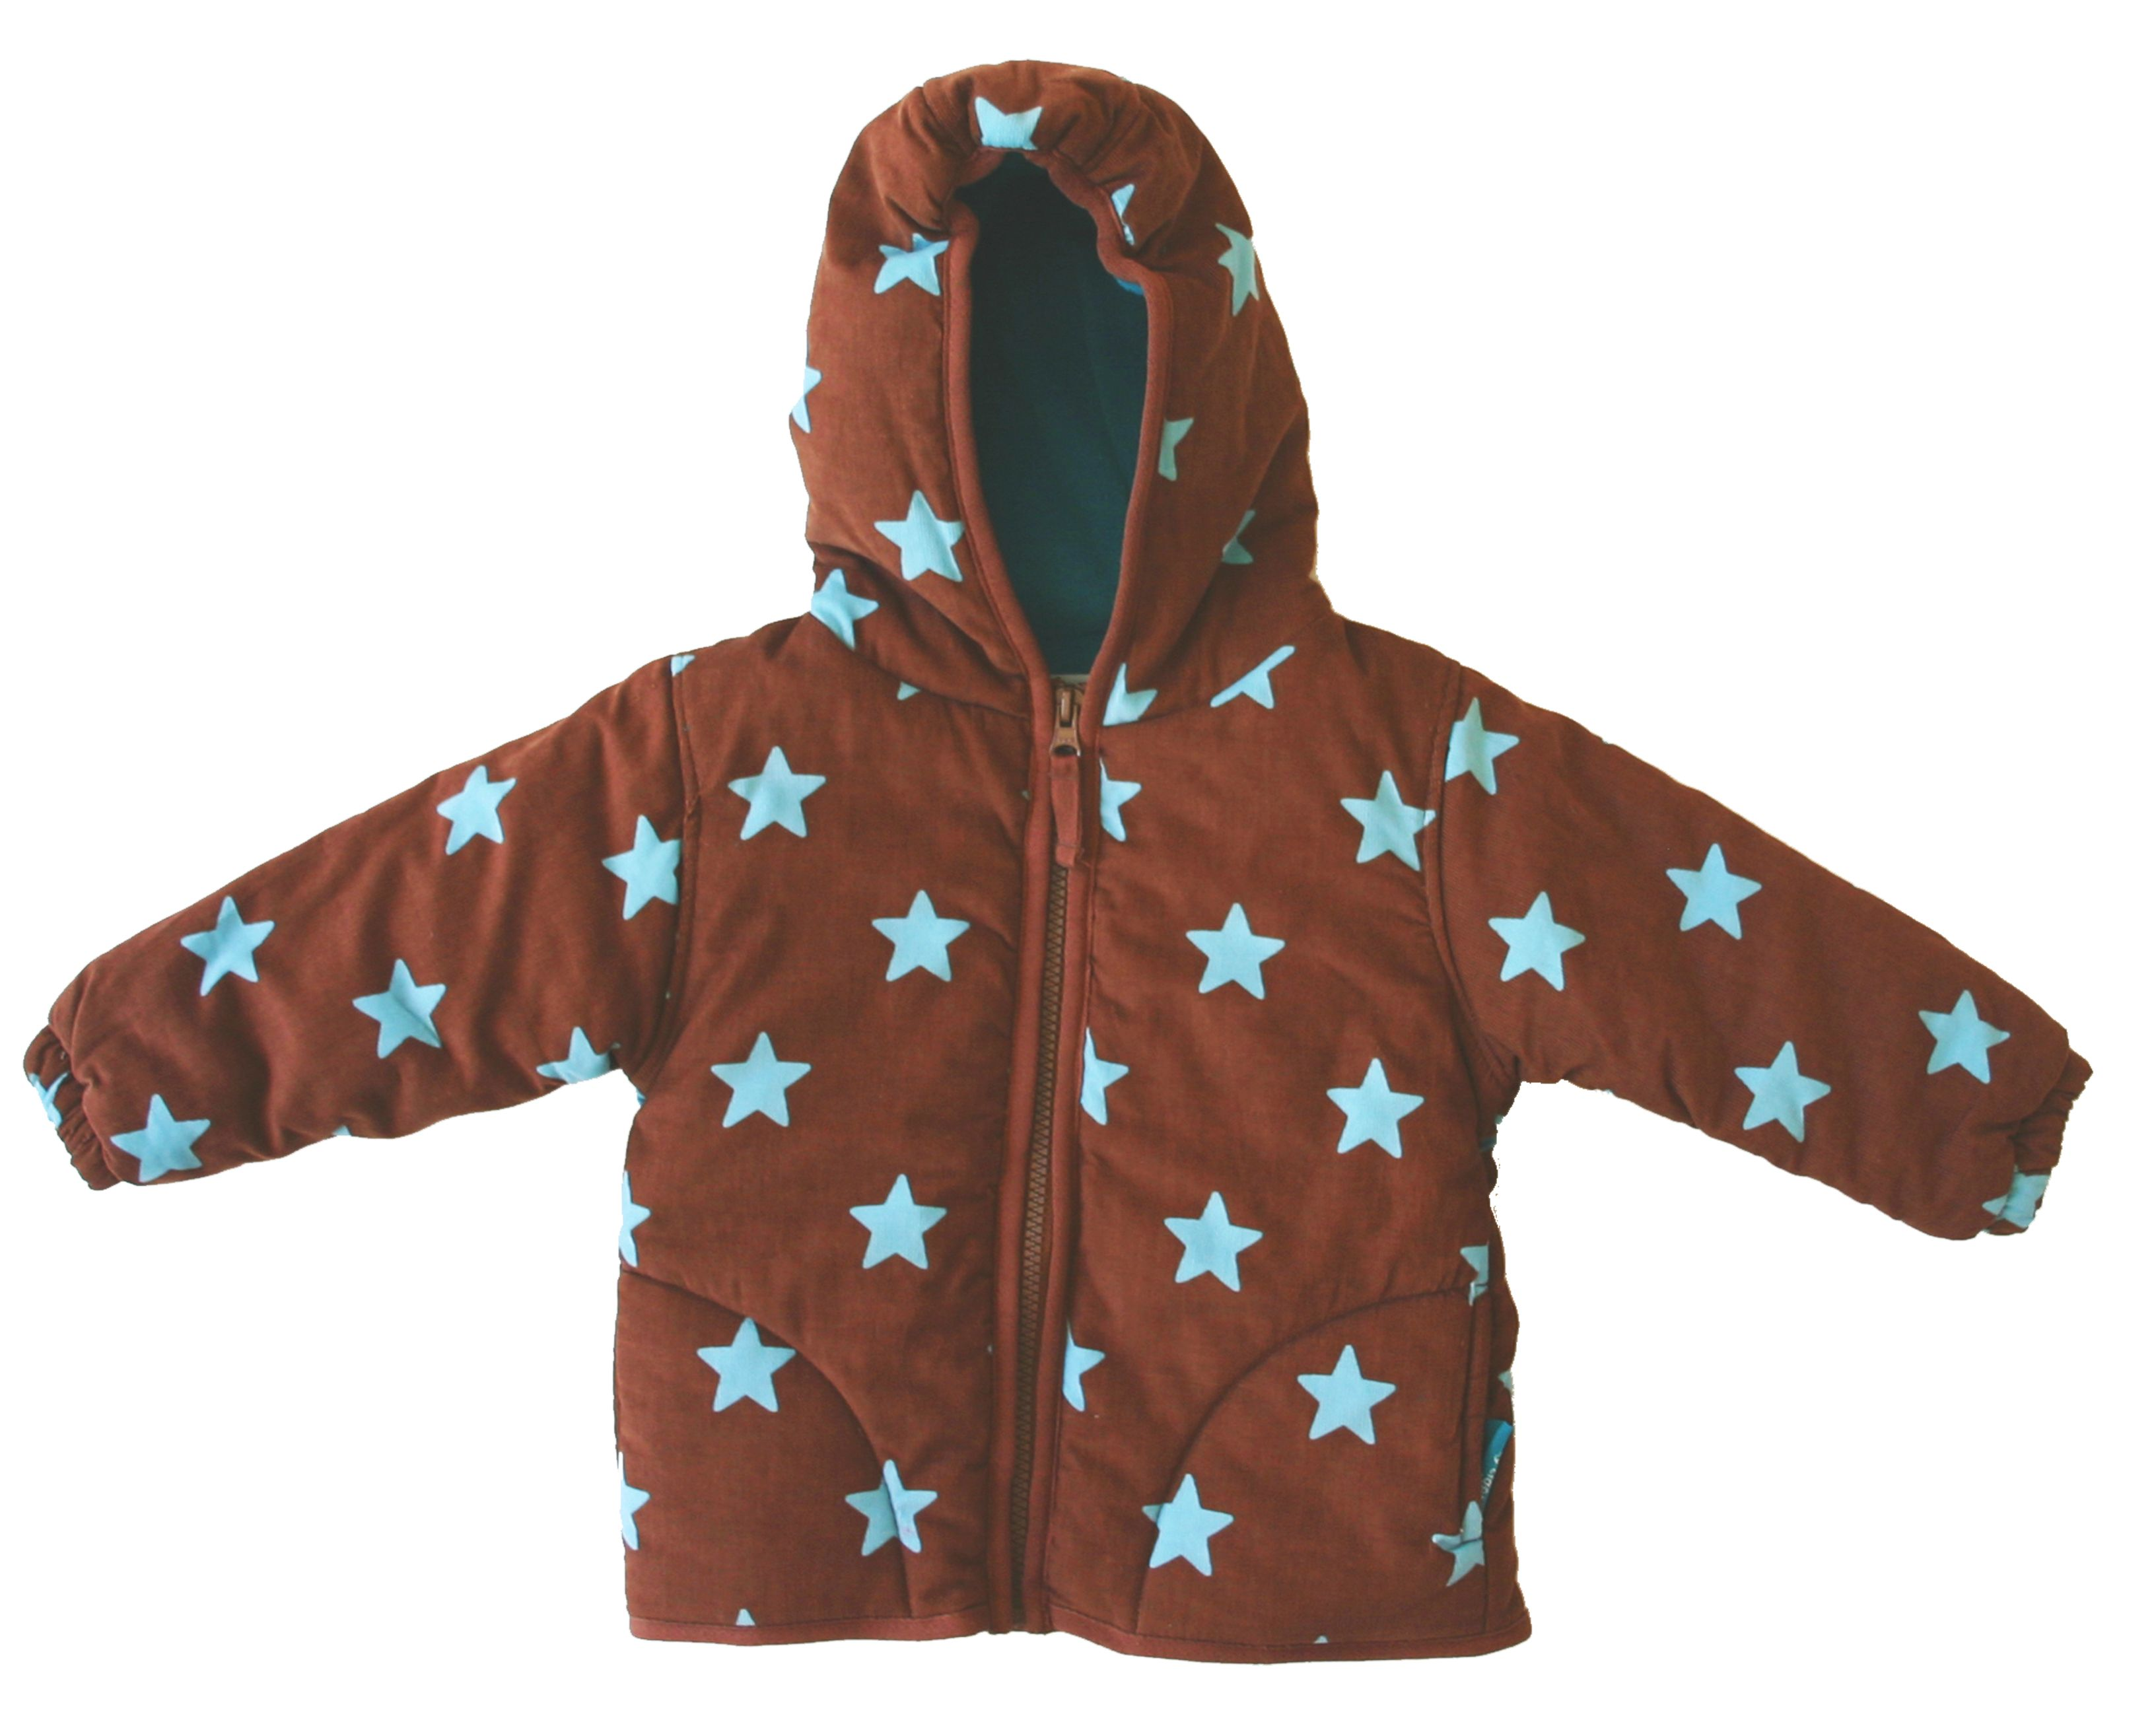 Toby Tiger Boys padded cord jacket, fleece lining, Brown